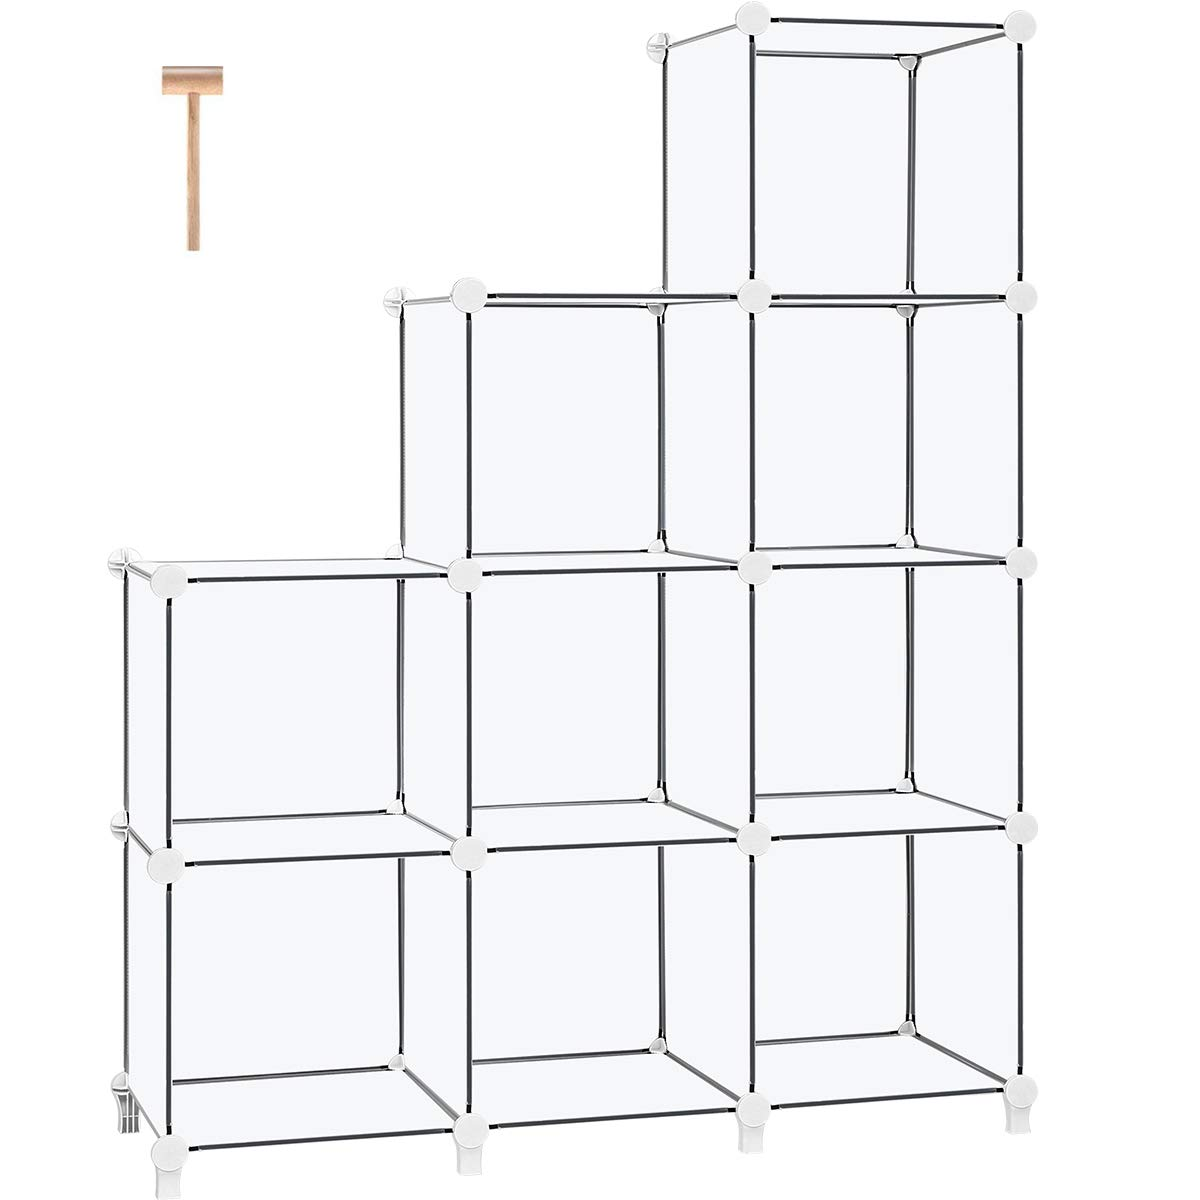 TomCare Cube Storage 9-Cube Book Shelf Storage Shelves Cube Organizer Closet Organizer Shelves Plastic Bookshelf Bookcase DIY Closet Cabinet Organizers Shelving for Bedroom Office Living Room, White